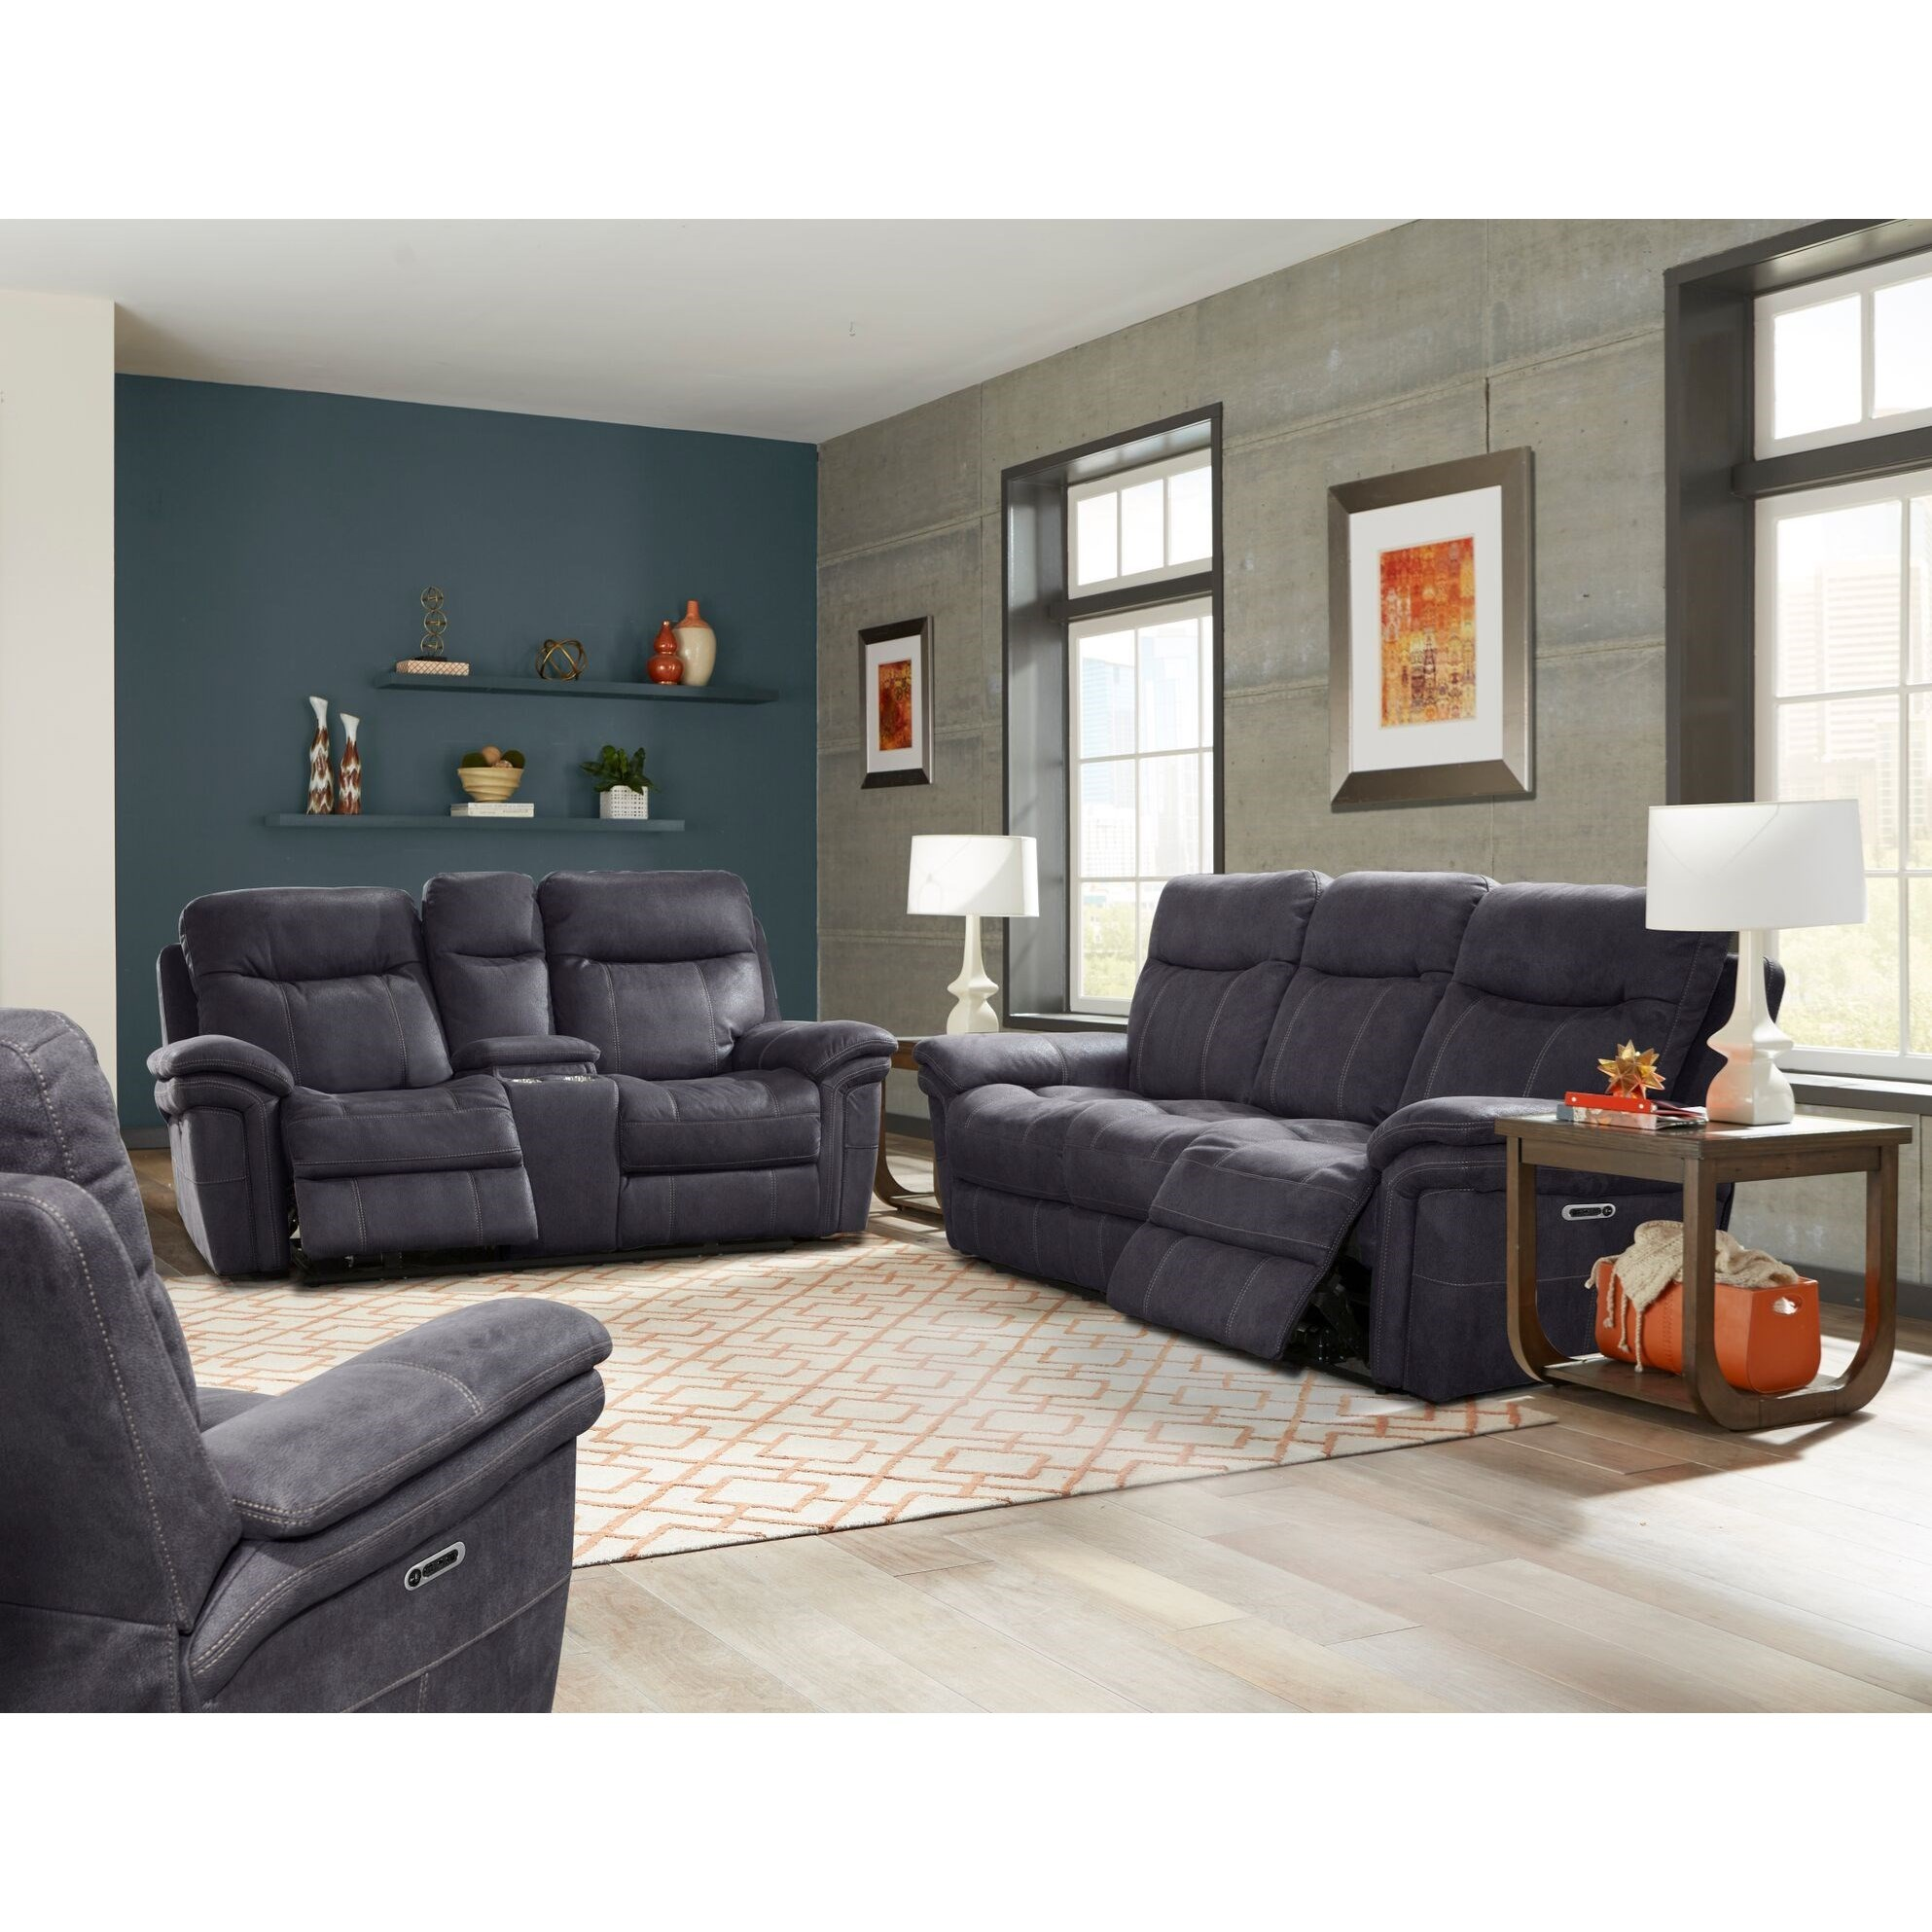 Mason Reclining Living Room Group by Parker Living at Wilcox Furniture